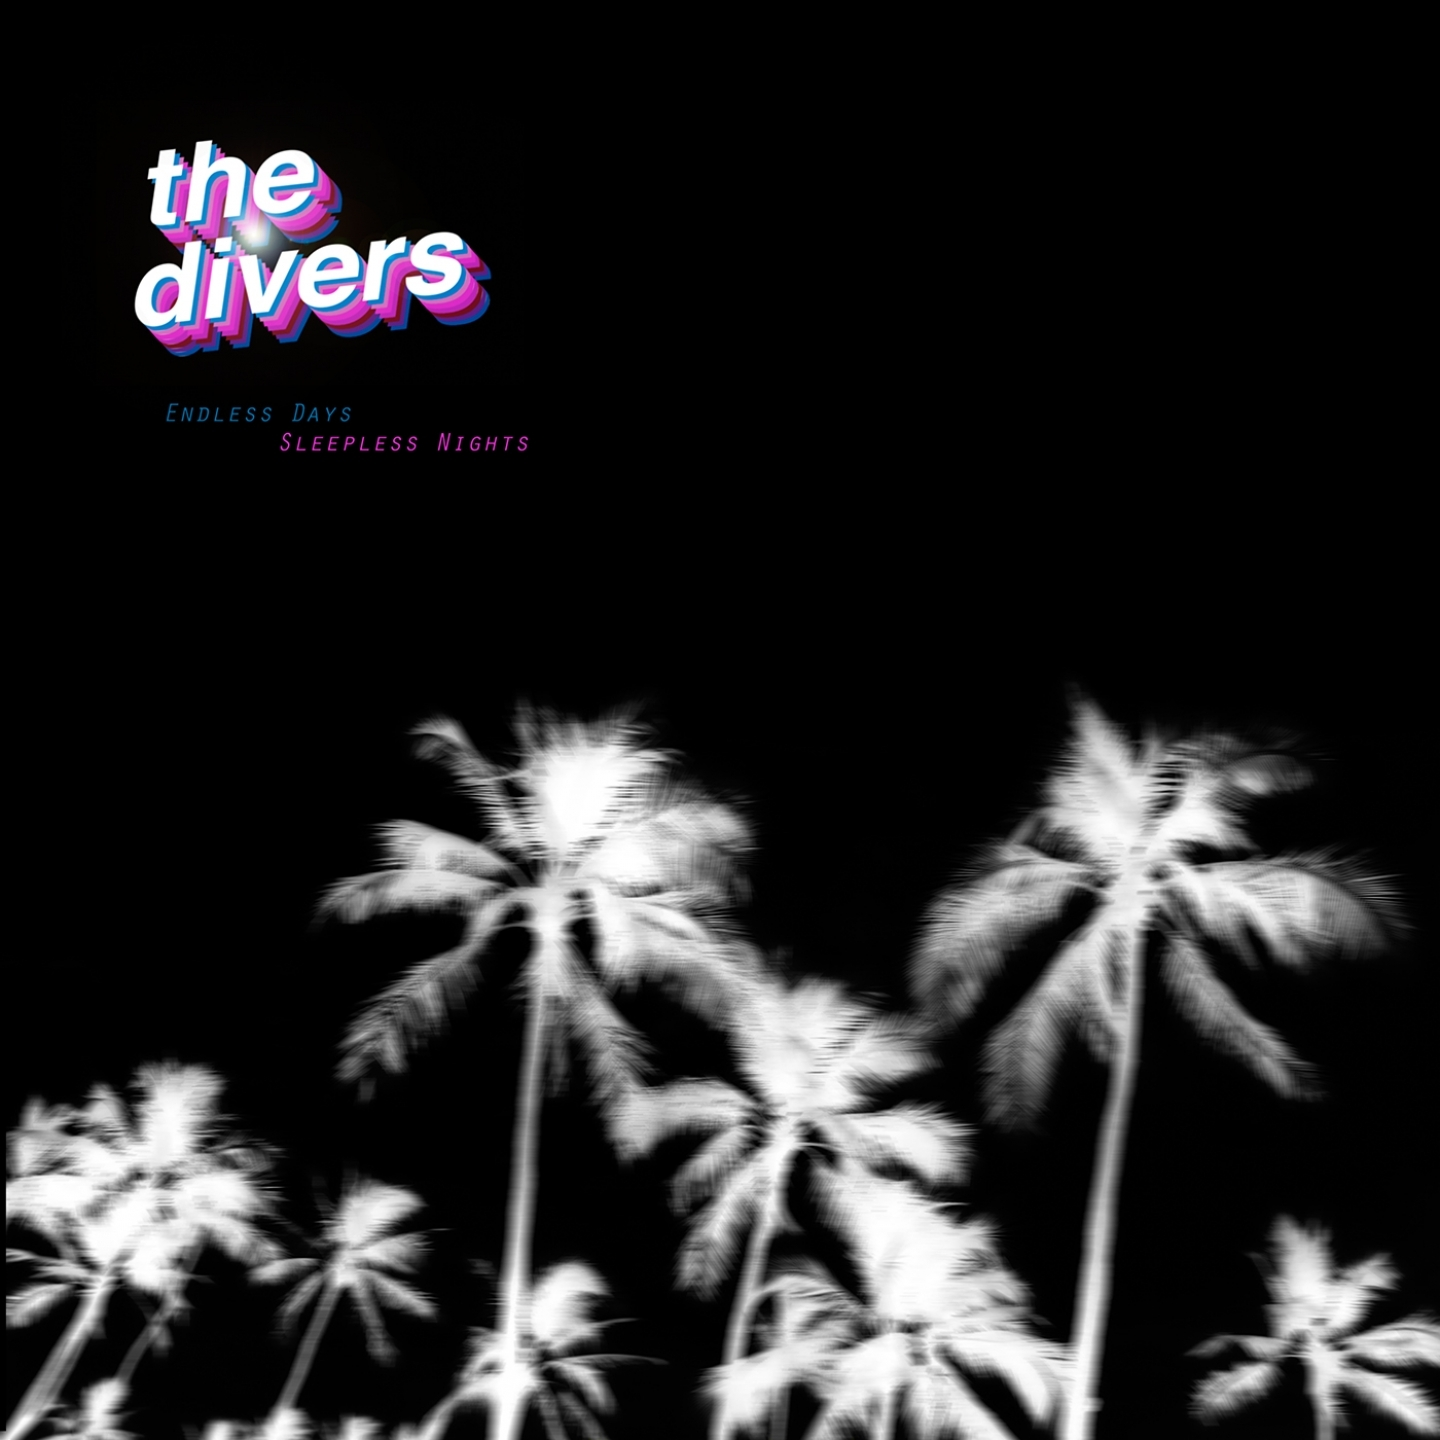 The Divers – 'Endless Days Sleepless Nights' (Album)